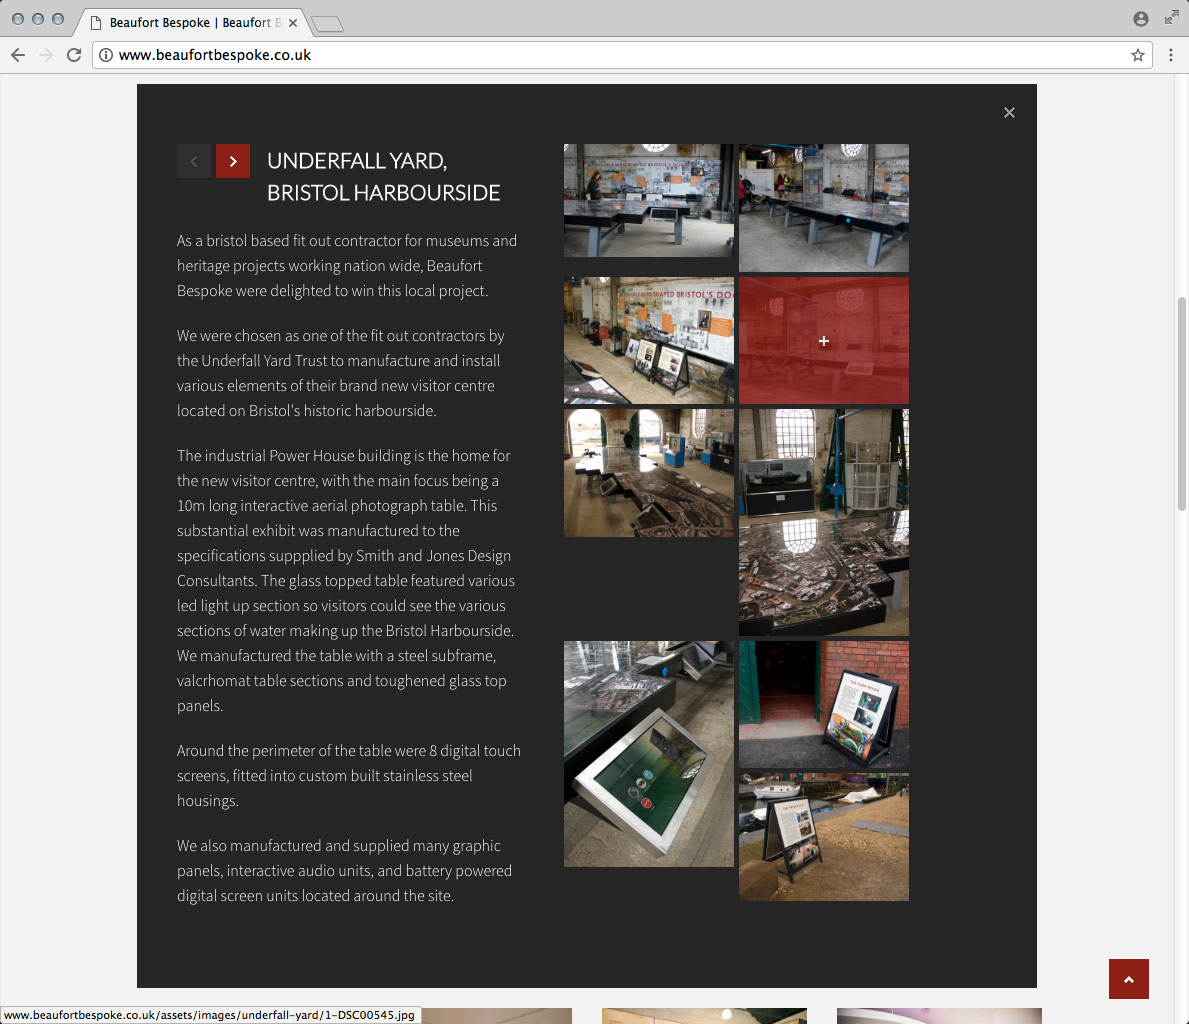 Website Development, Website Design and CMS. A Wordpress Website for Beaufort Bespoke Exhibition Design.